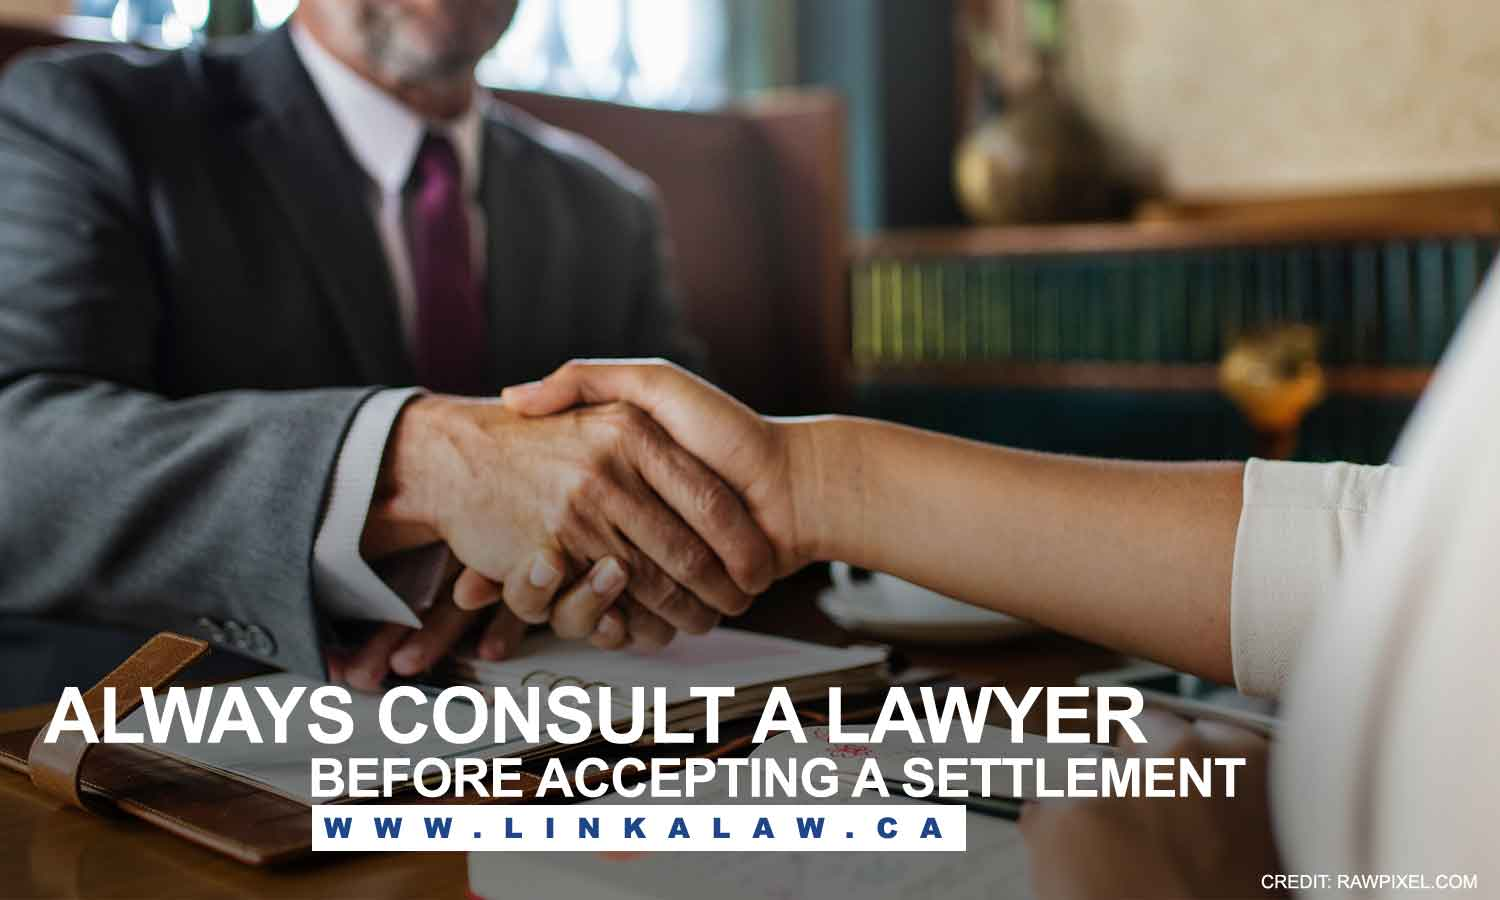 Always consult a lawyer before accepting a settlement